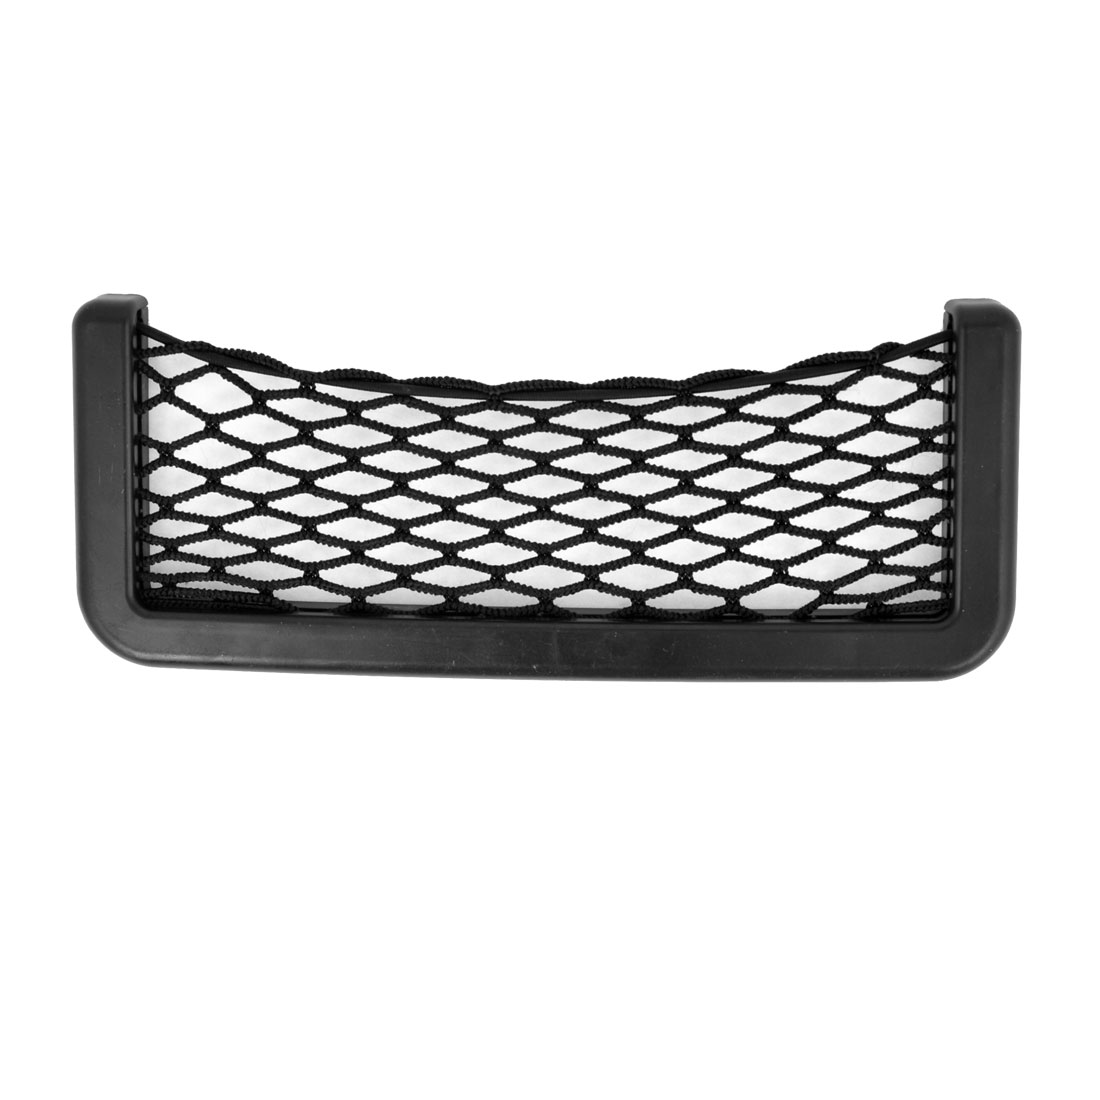 Elastic Nylon Net Design Phone Money Black String Mesh Bag Pocket for Auto Car